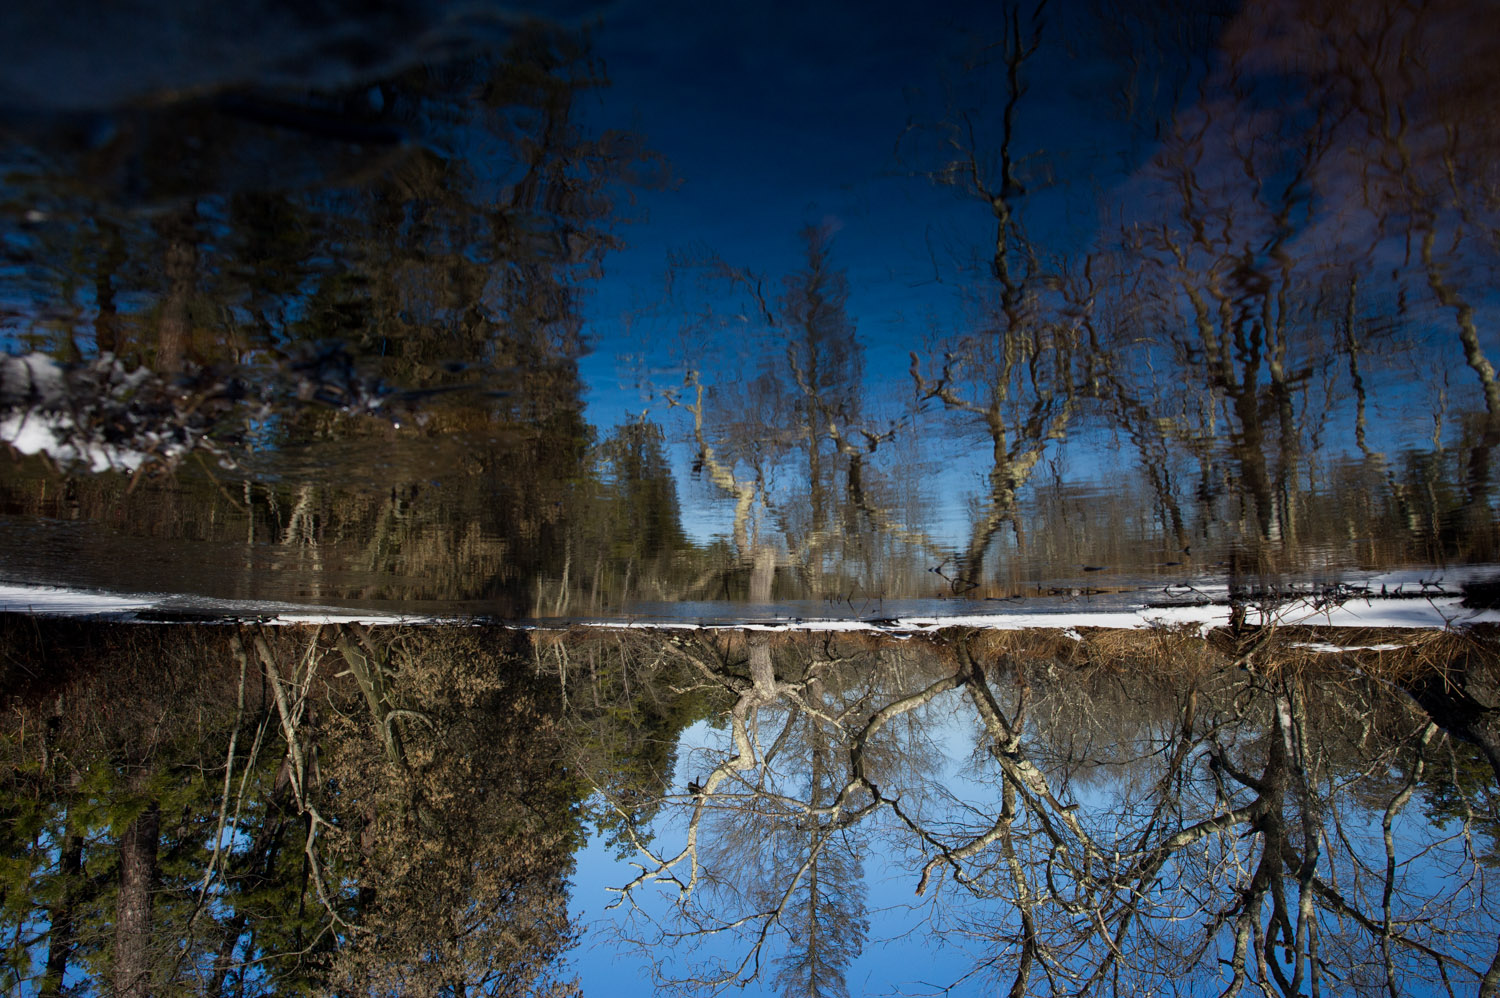 Since I actually took this photo upside down while hanging over the edge of the river I figured I'd just leave it this way to really mess with you. Taken at Wharton State Forest in the NJ Pine Barrens.